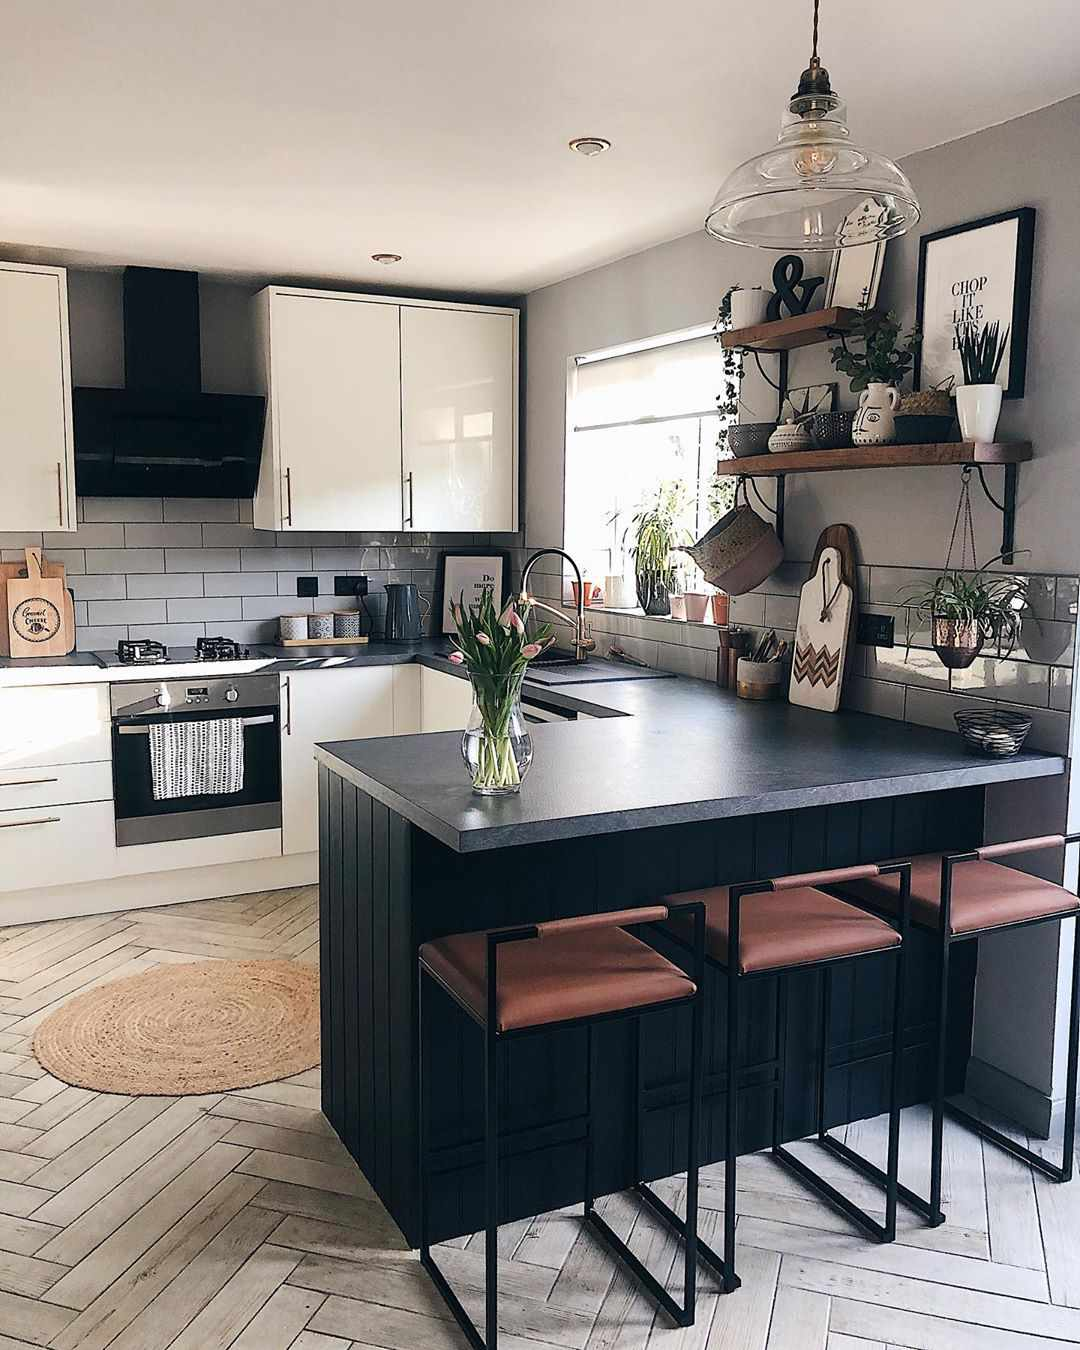 Kitchen with industrial decor